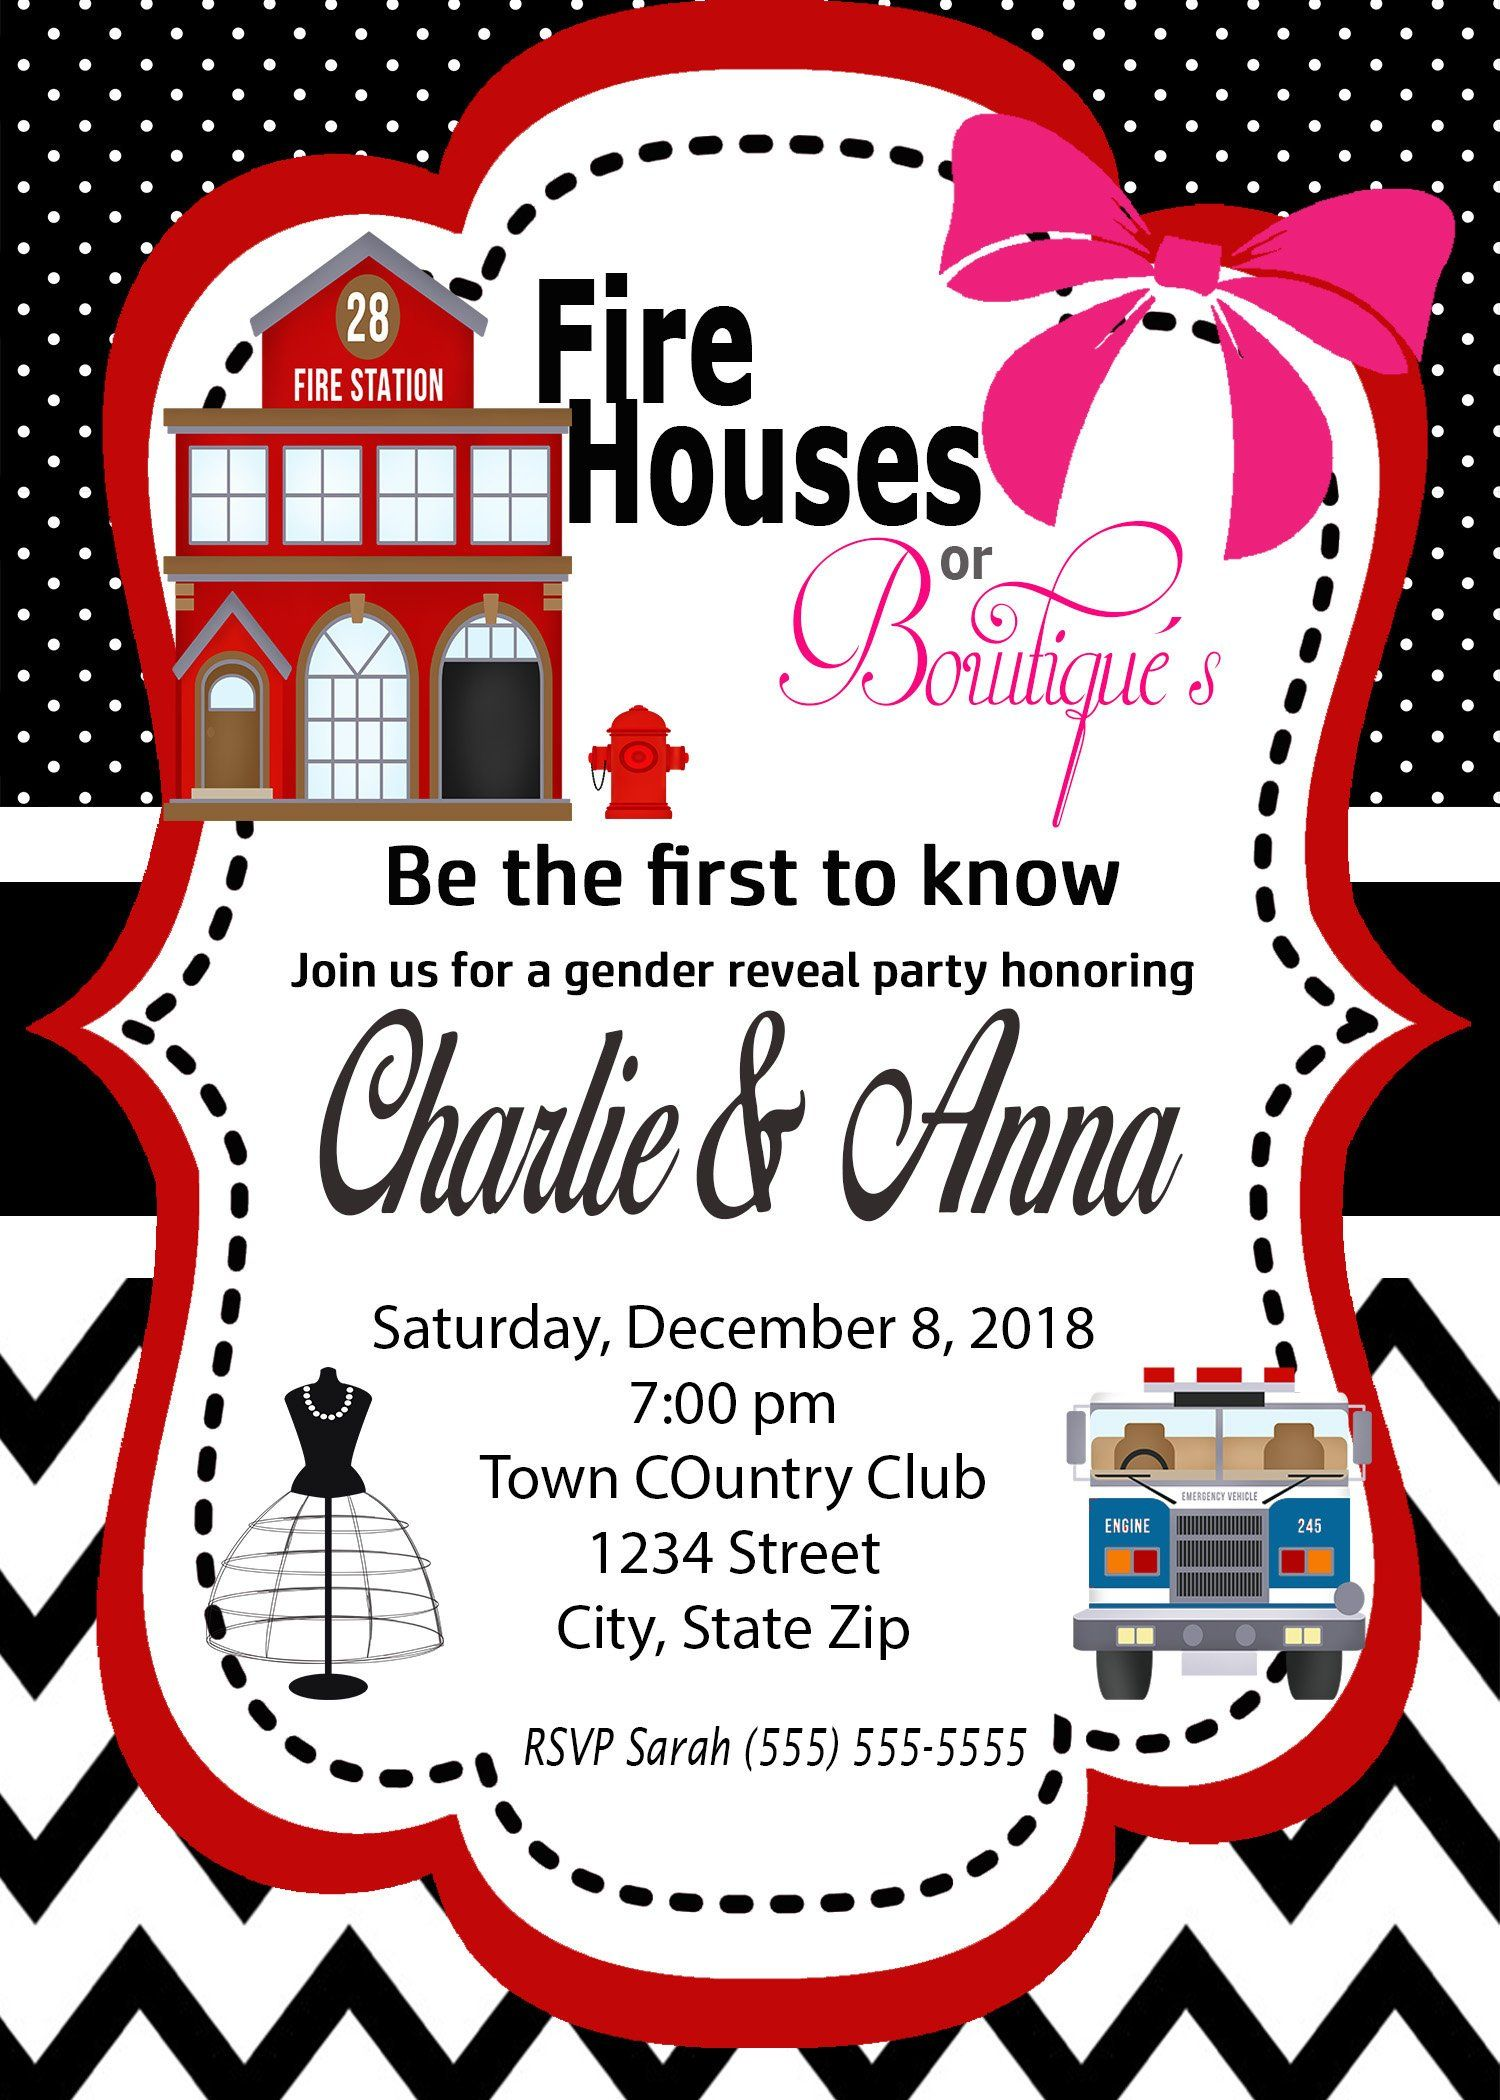 Fire Houses Or Bowtique S Gender Reveal Invitation Etsy In 2021 Gender Reveal Invitations Gender Reveal Gender Reveal Party Games